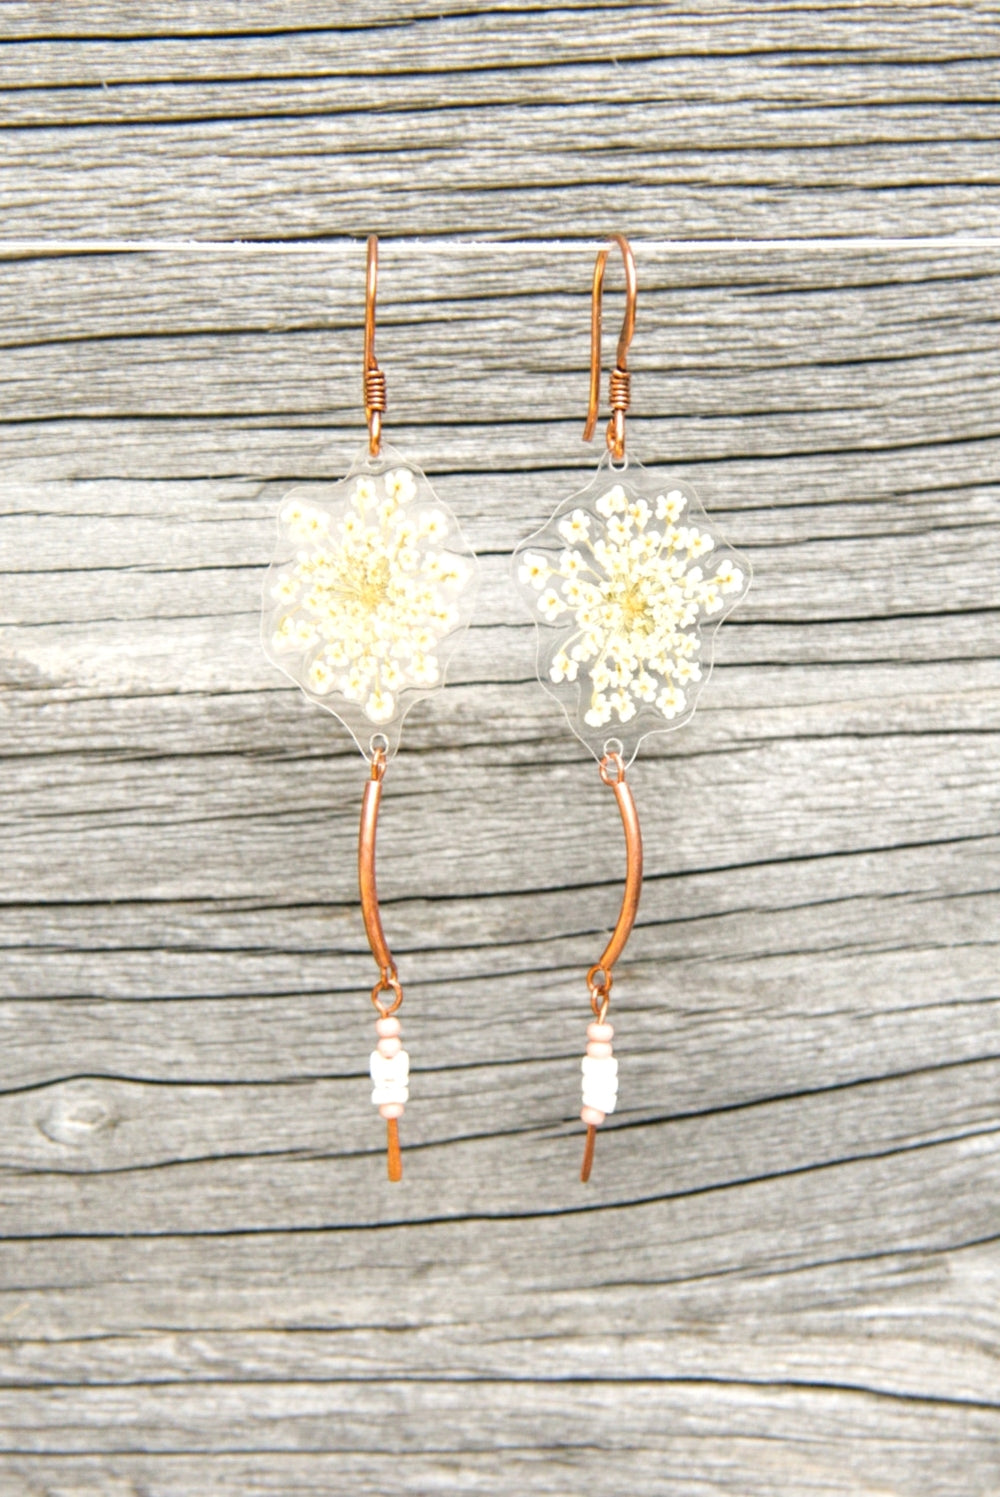 White Queen Anne's Lace Pressed Flower Earrings with Czech Glass Beads